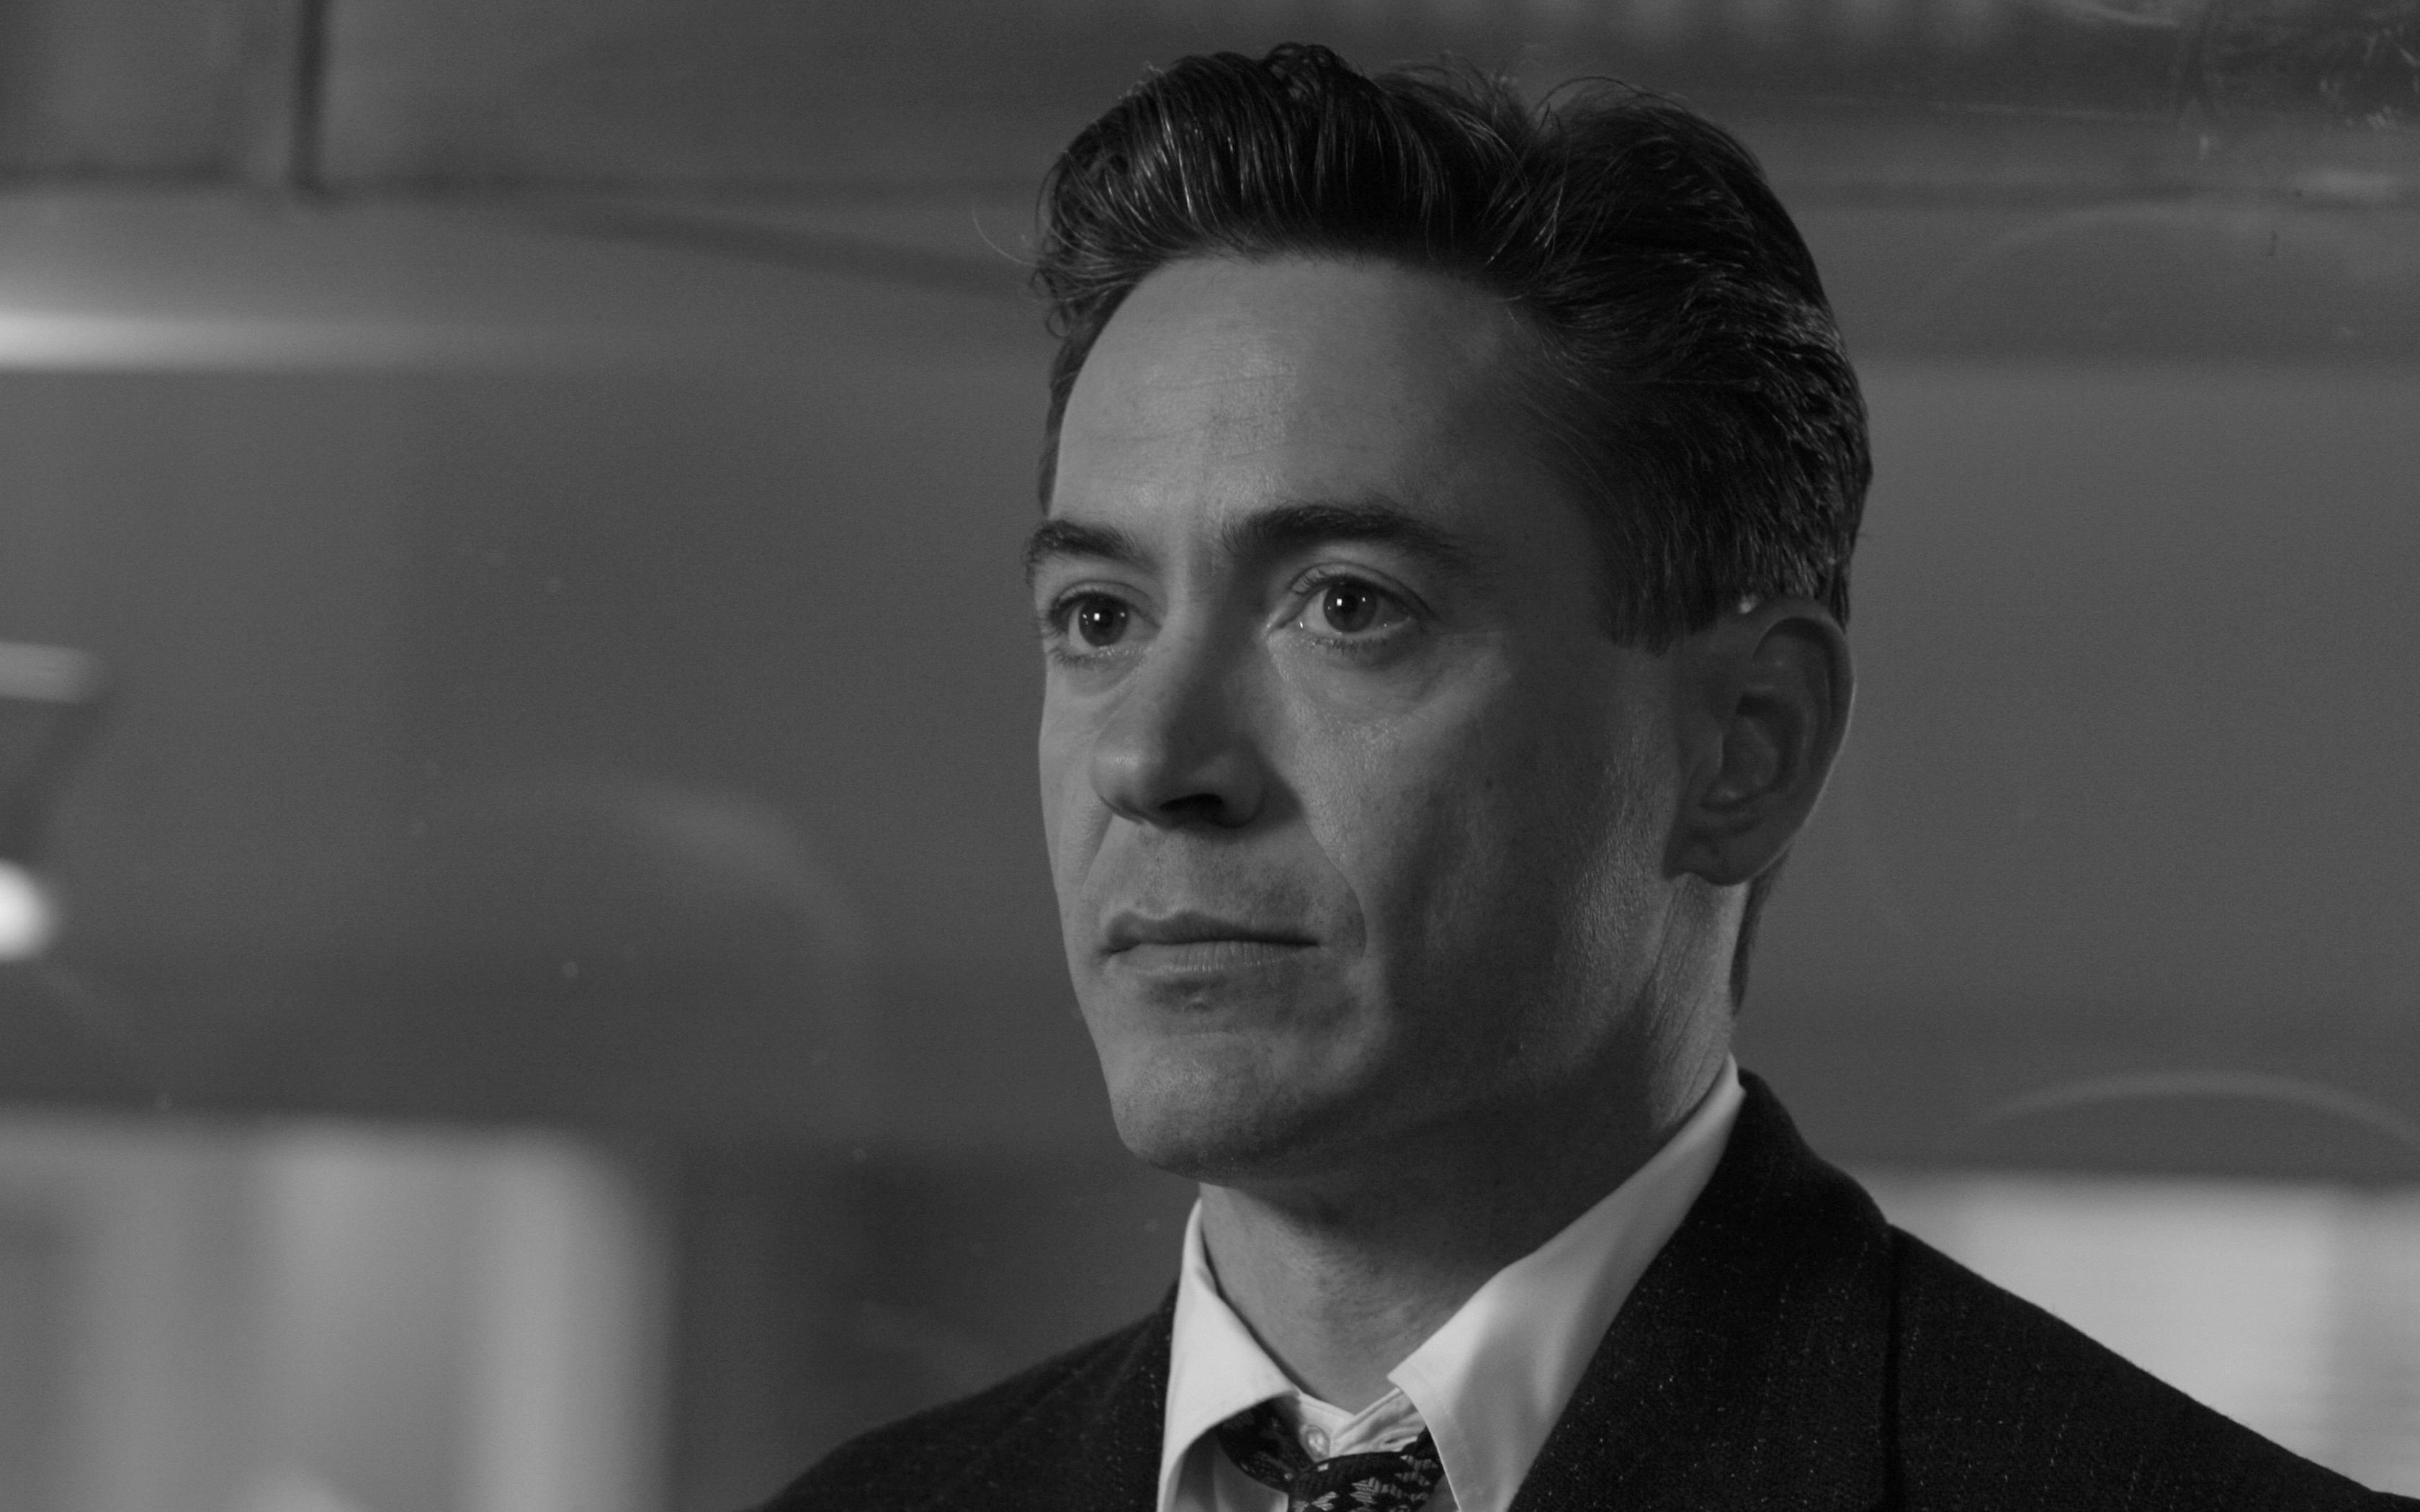 monochrome robert downey jr wide wallpaper 54889